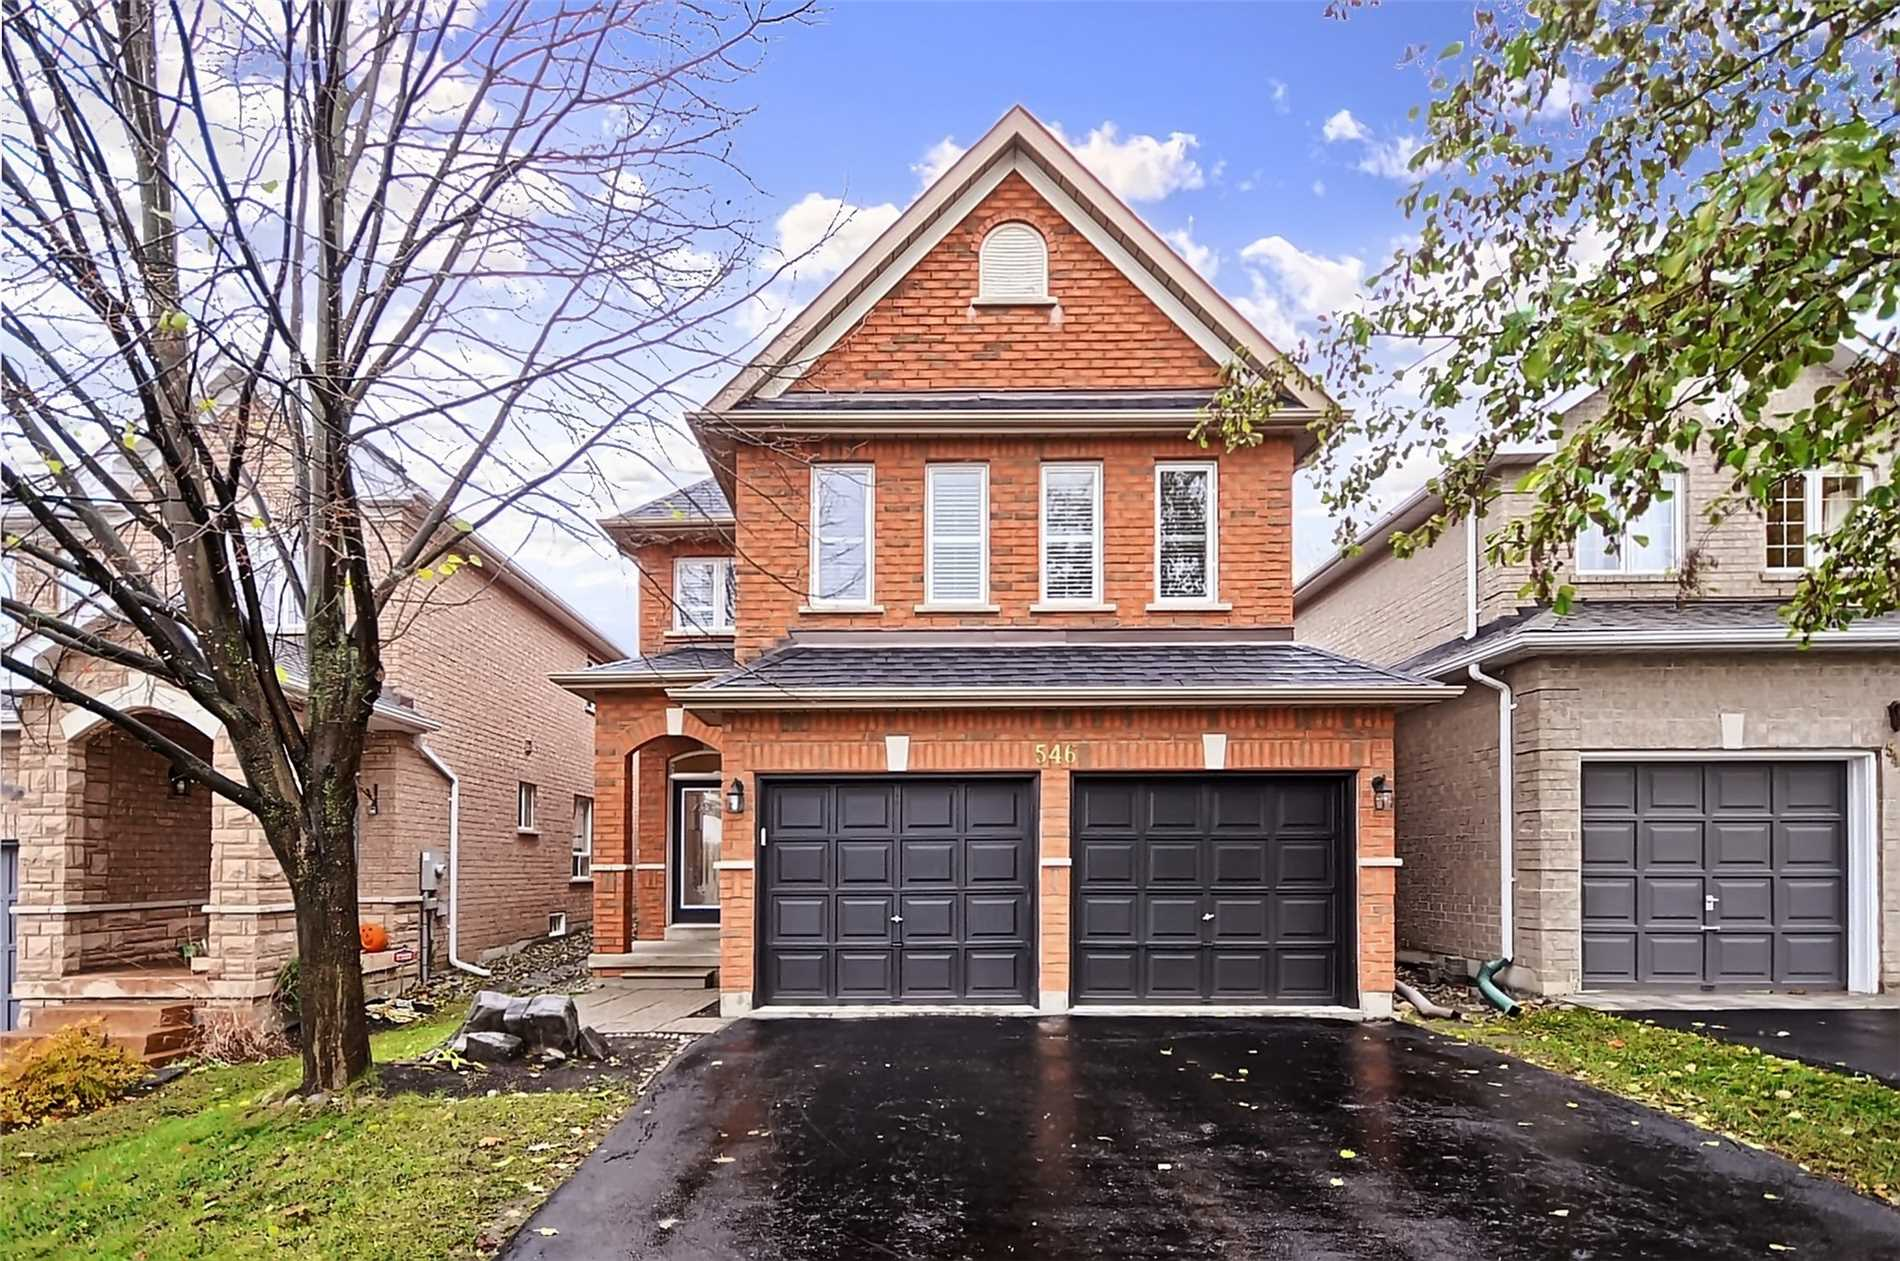 House for sale at 546 Menczel Crescent Newmarket Ontario - MLS: N4311248